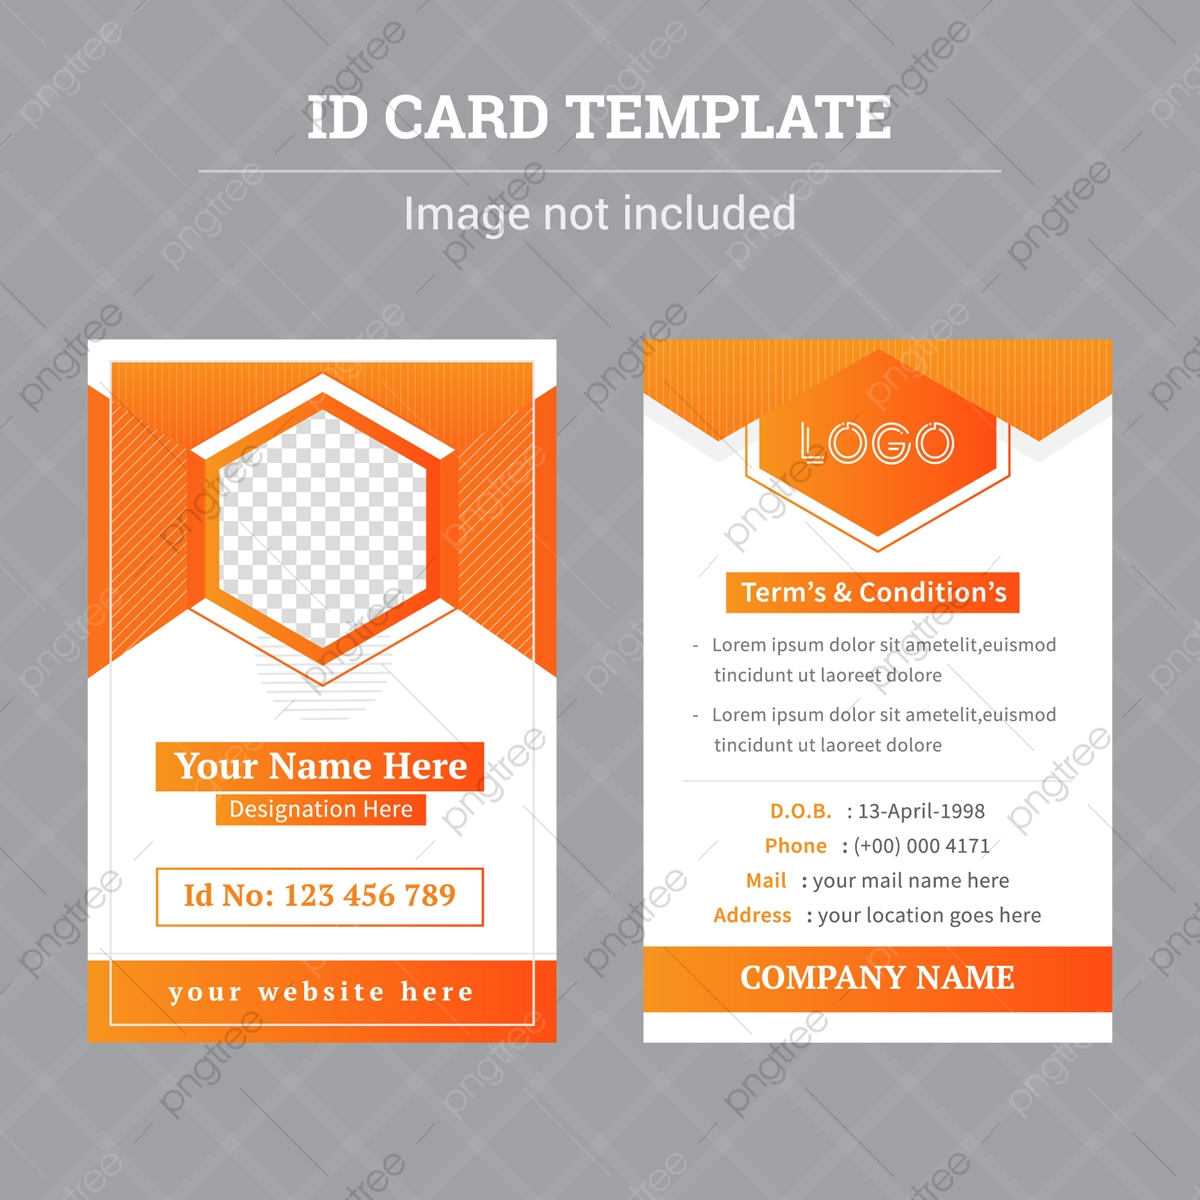 Free Identity Card Template from png.pngtree.com